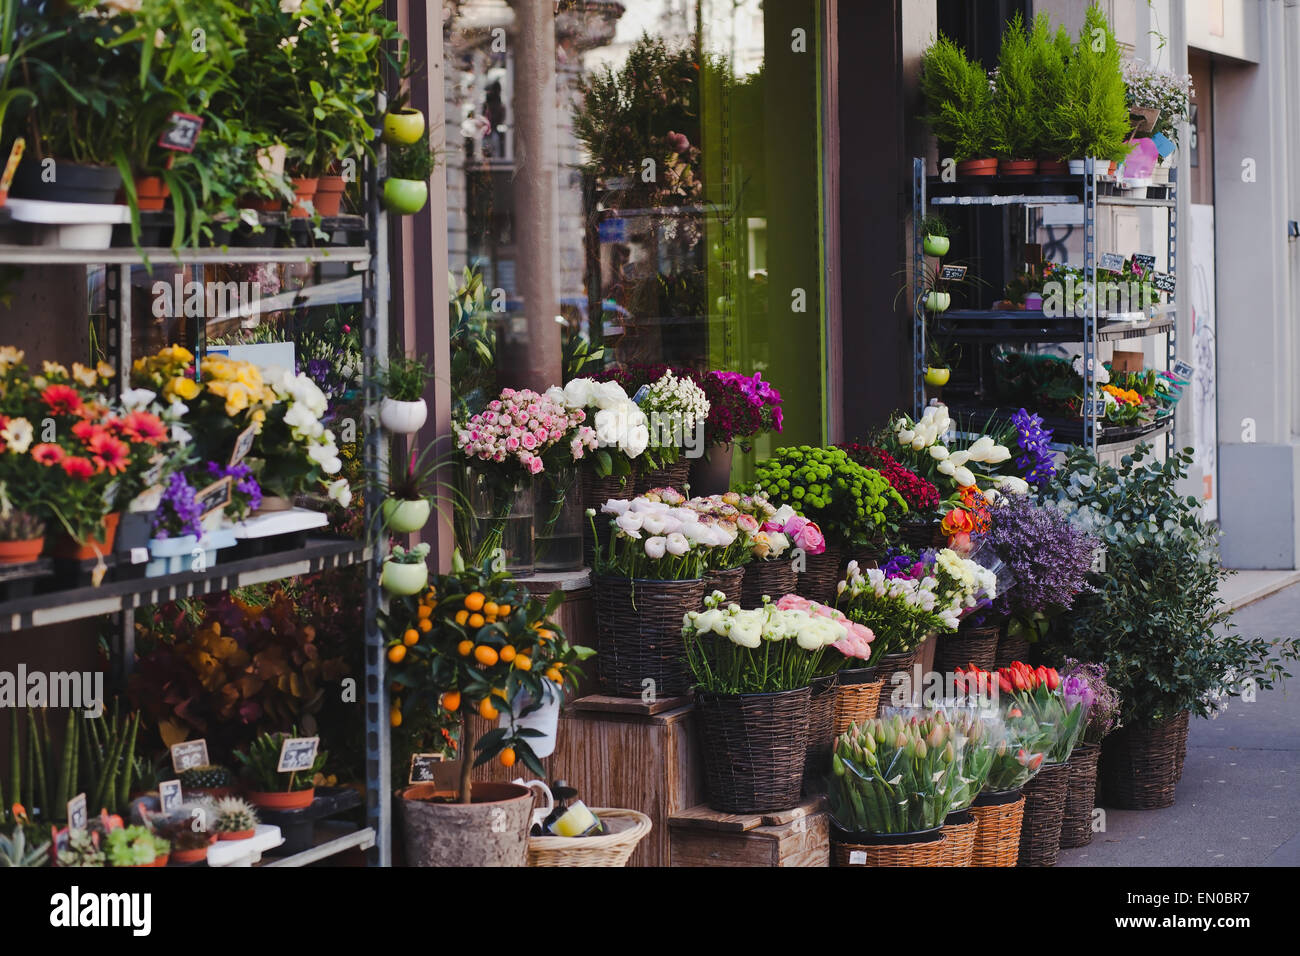 Flower Shop Store Paris France Stock Photos Flower Shop Store